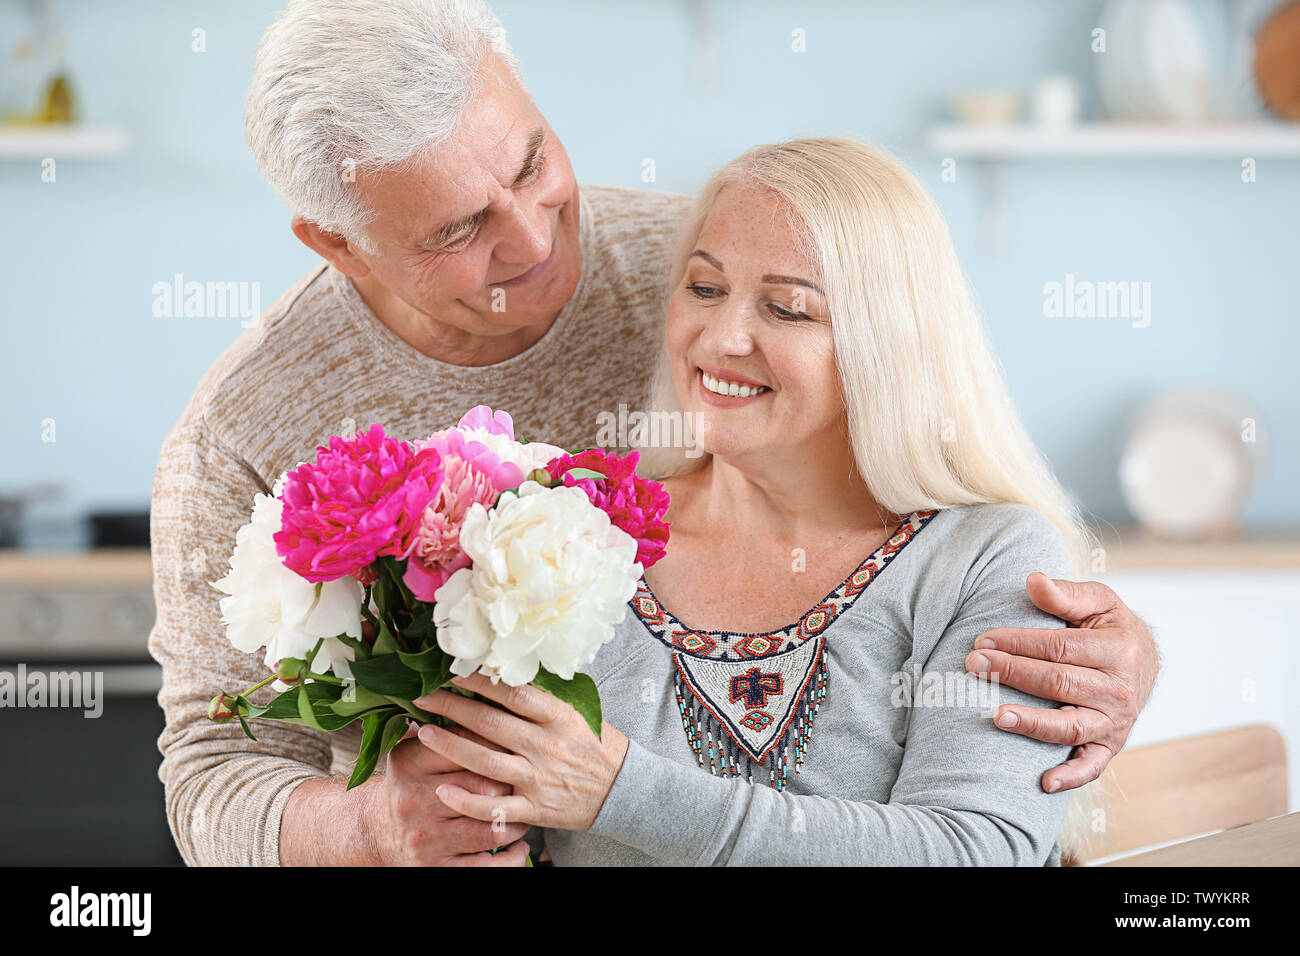 Mature man giving flowers to his wife in kitchen - Stock Image